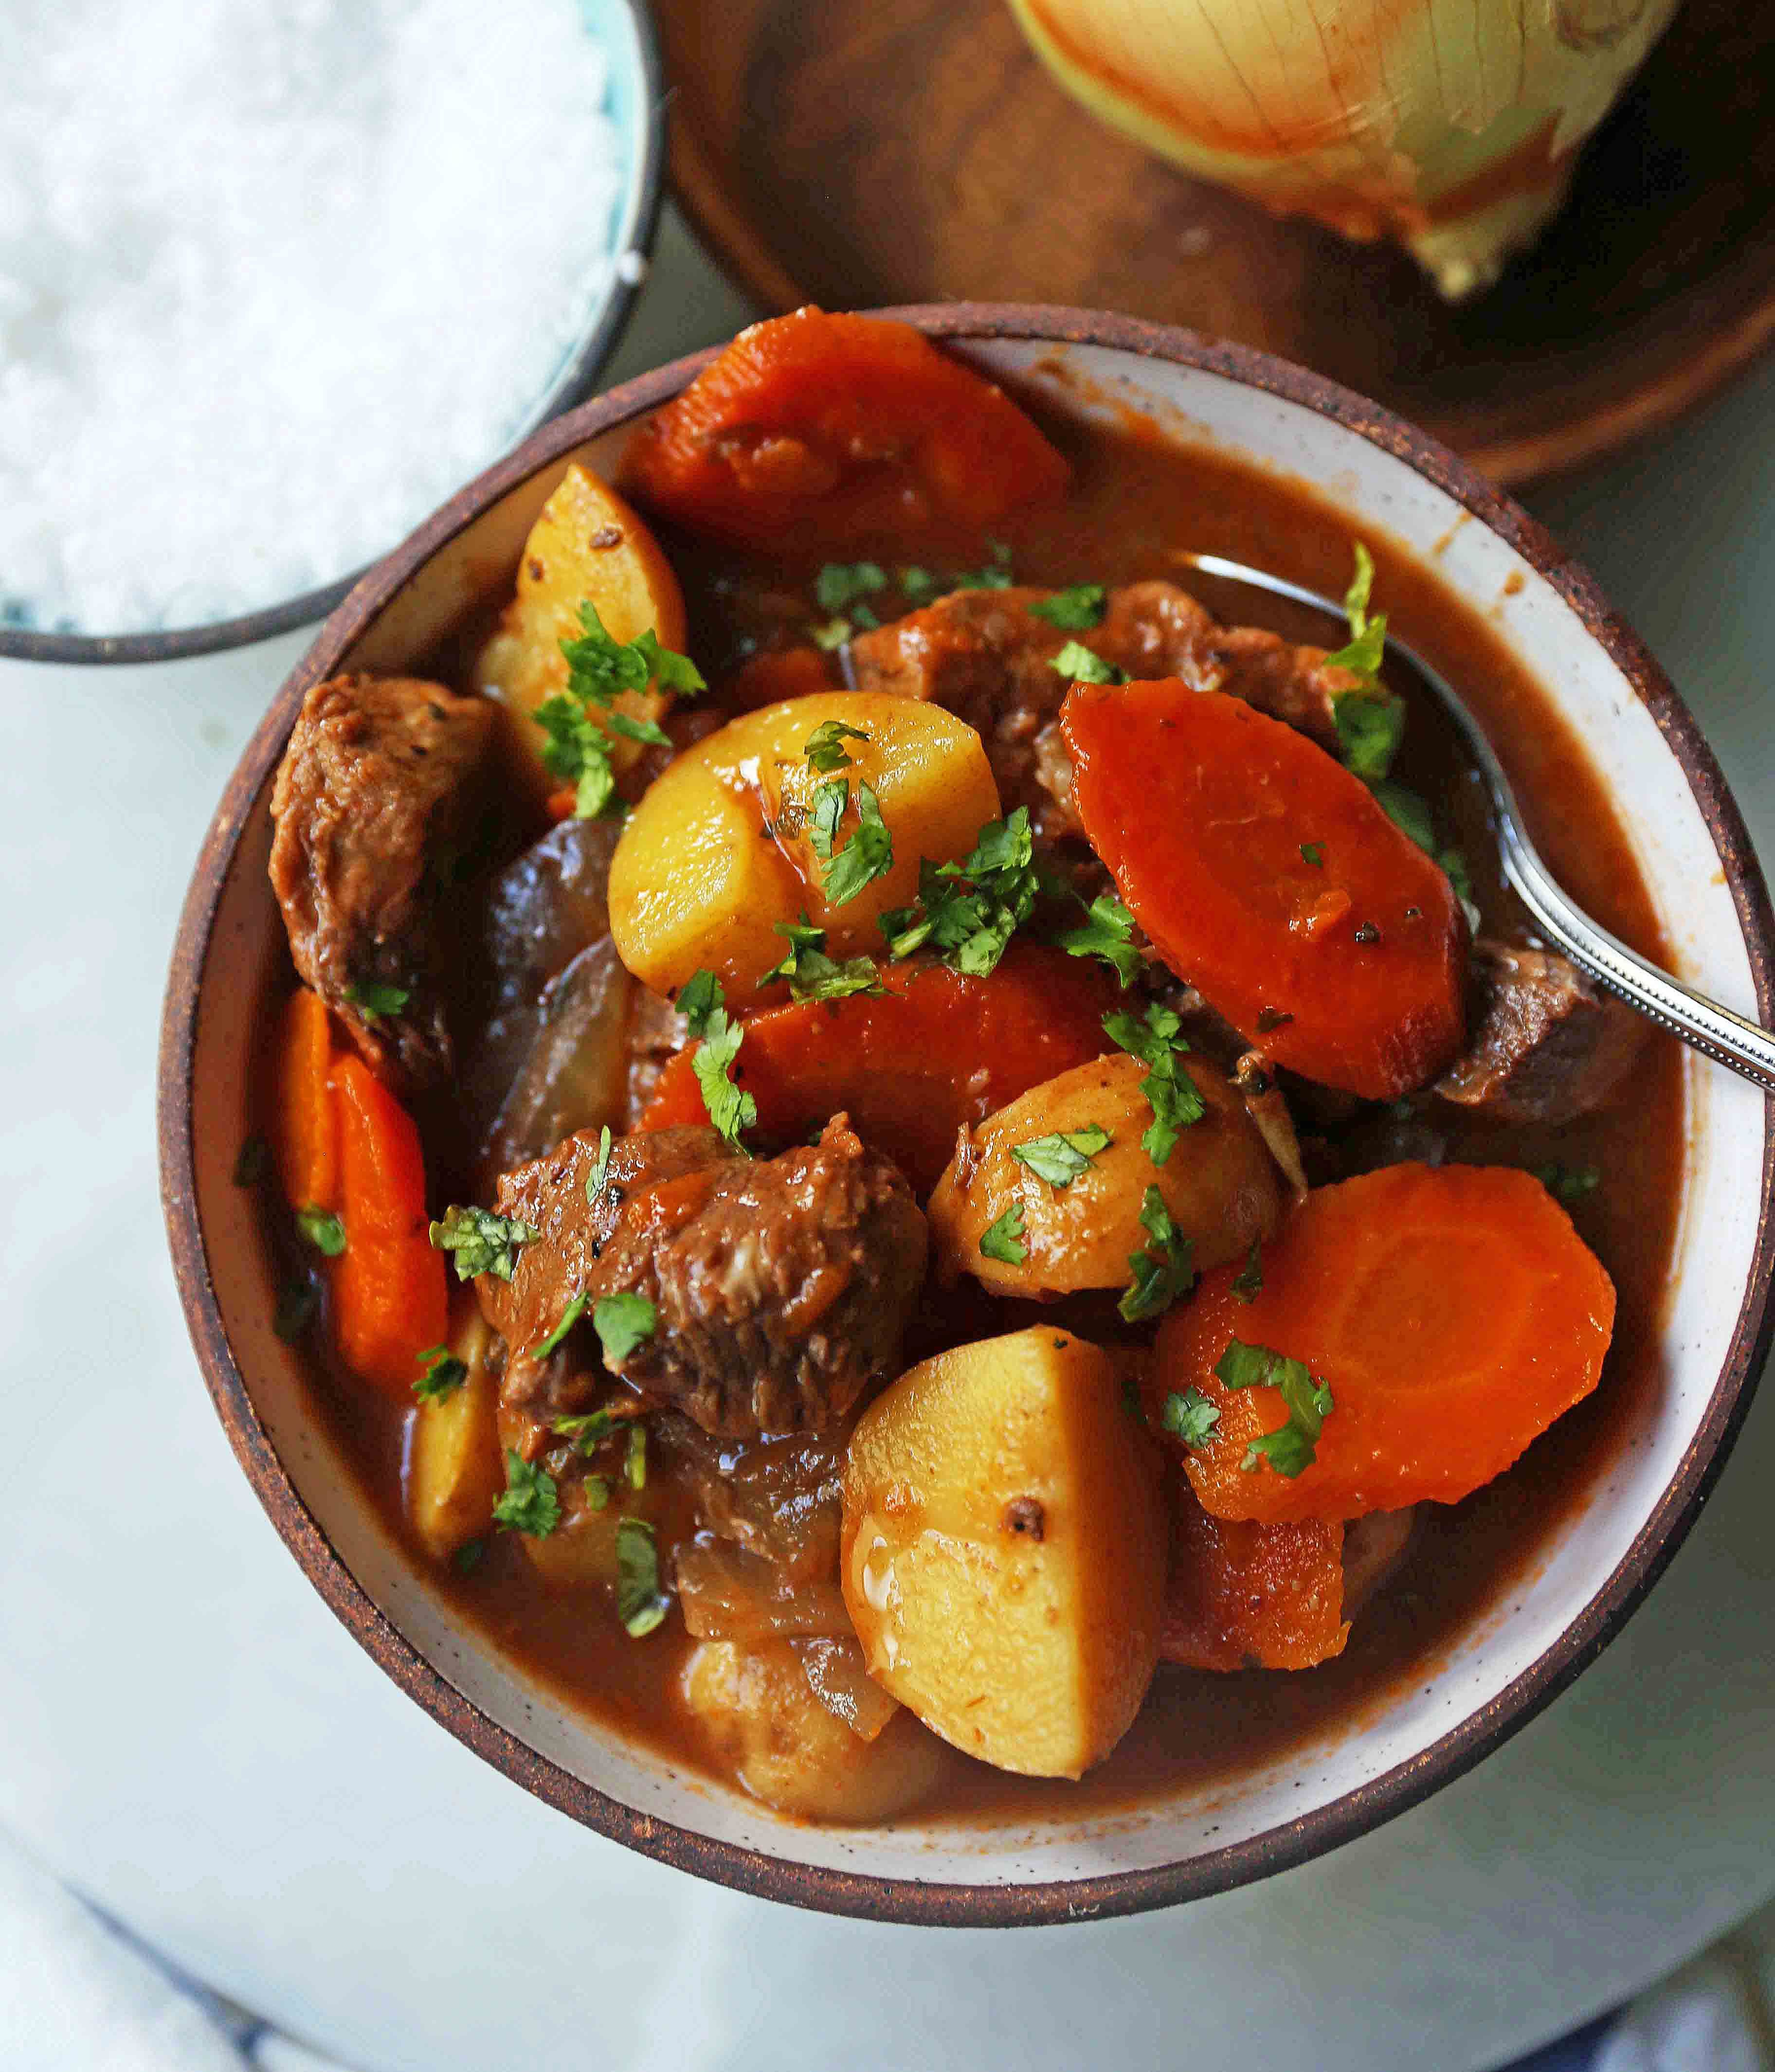 Hearty Beef Stew Recipe Is The Ultimate Comfort Food A Healthy Beef Stew Recipe Using Lean Be Beef Stew Recipe Healthy Lean Beef Stew Hearty Beef Stew Recipes